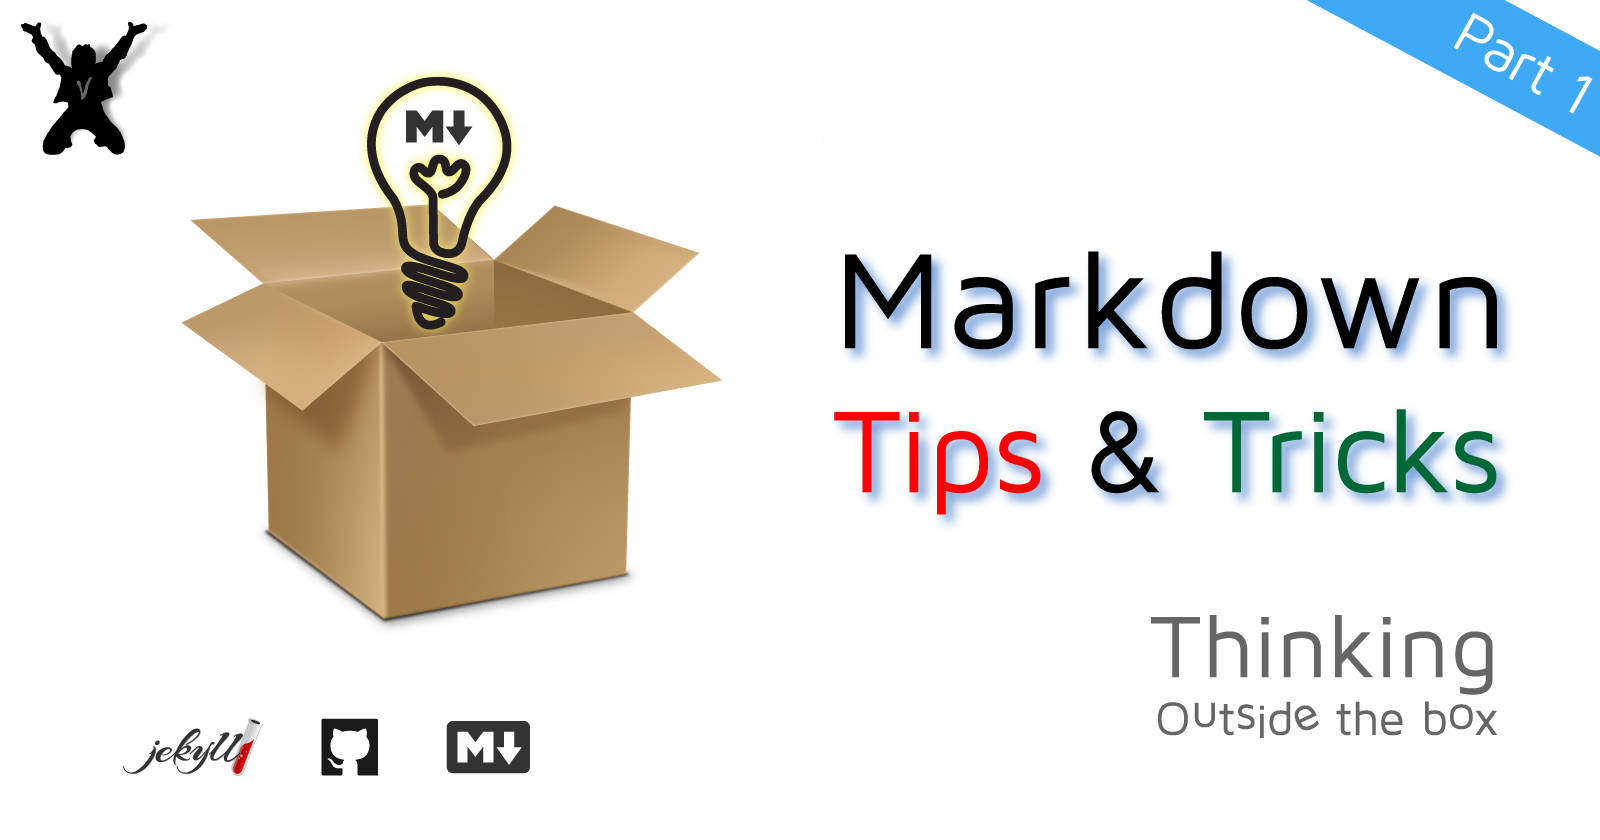 Markdown Tips & Tricks - Thinking Outside the Box